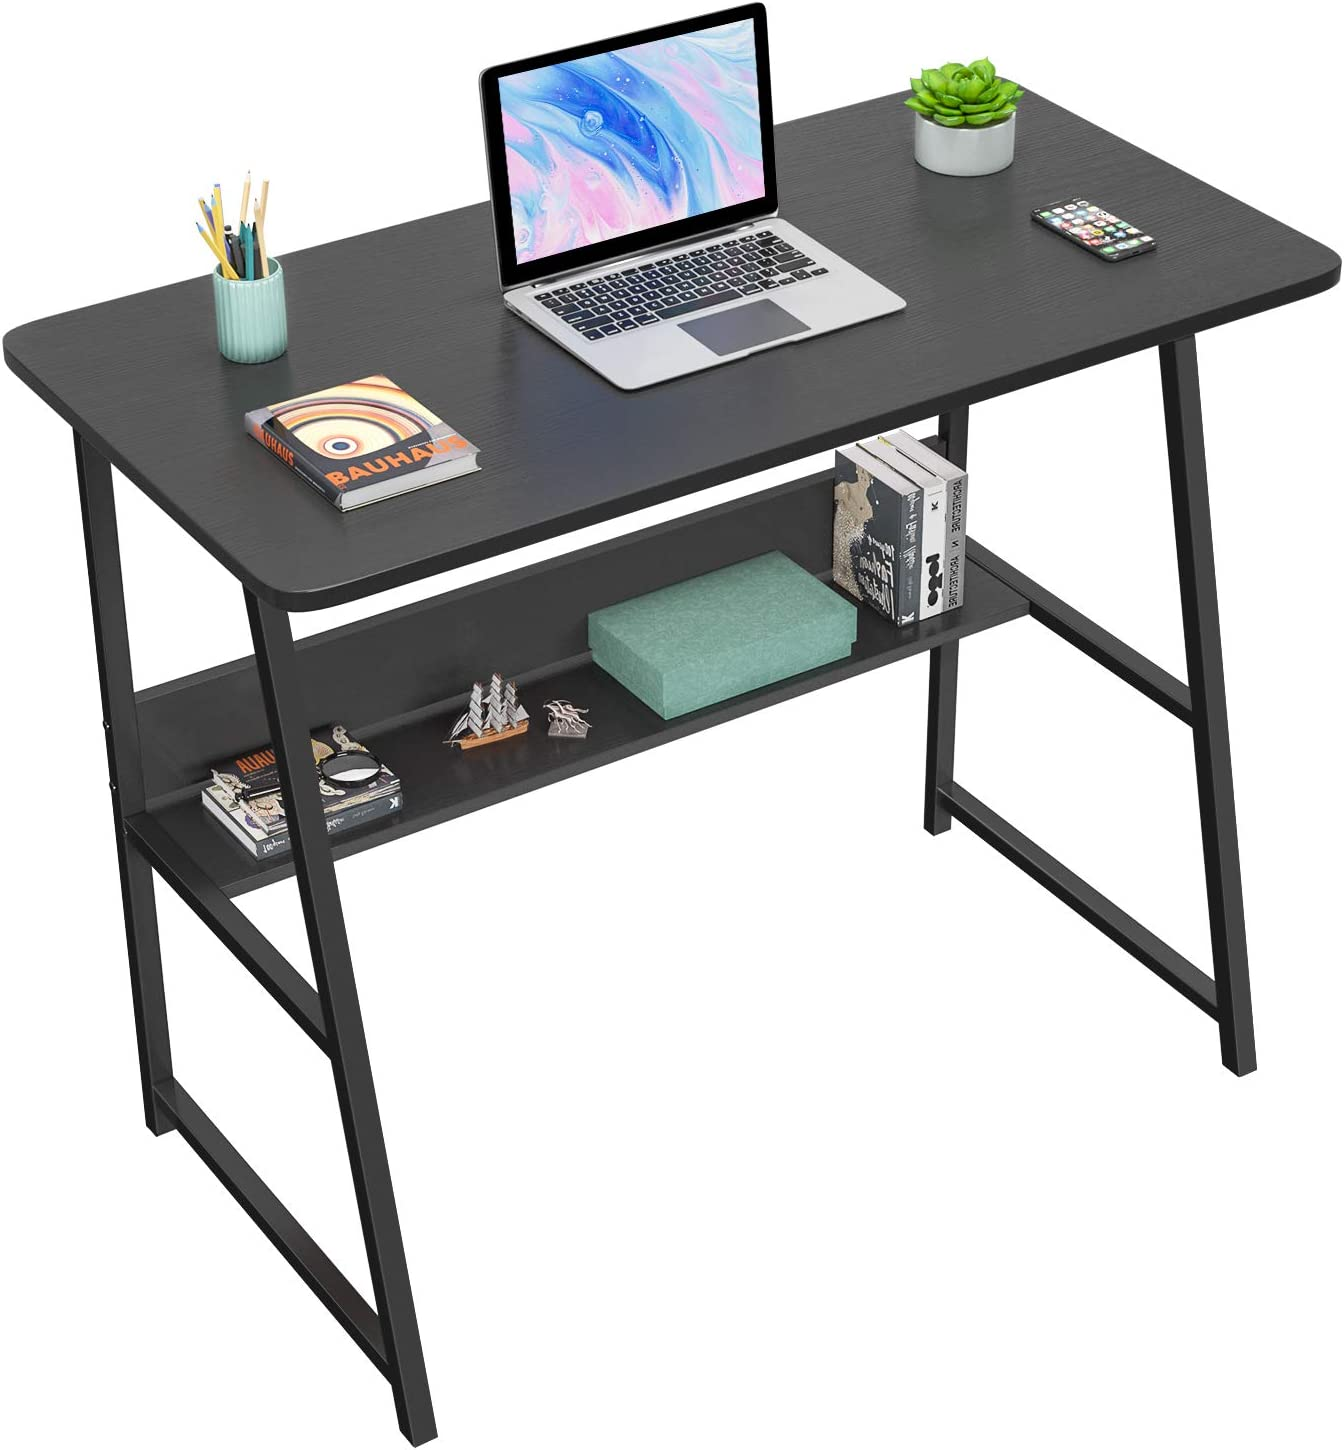 "Homfio Computer Desks for Home Office 32"" Modern Sturdy Writing Desk with Bookshelf Study Table Desk with Metal Legs Industrial Tiny Table for Small Space, Black"